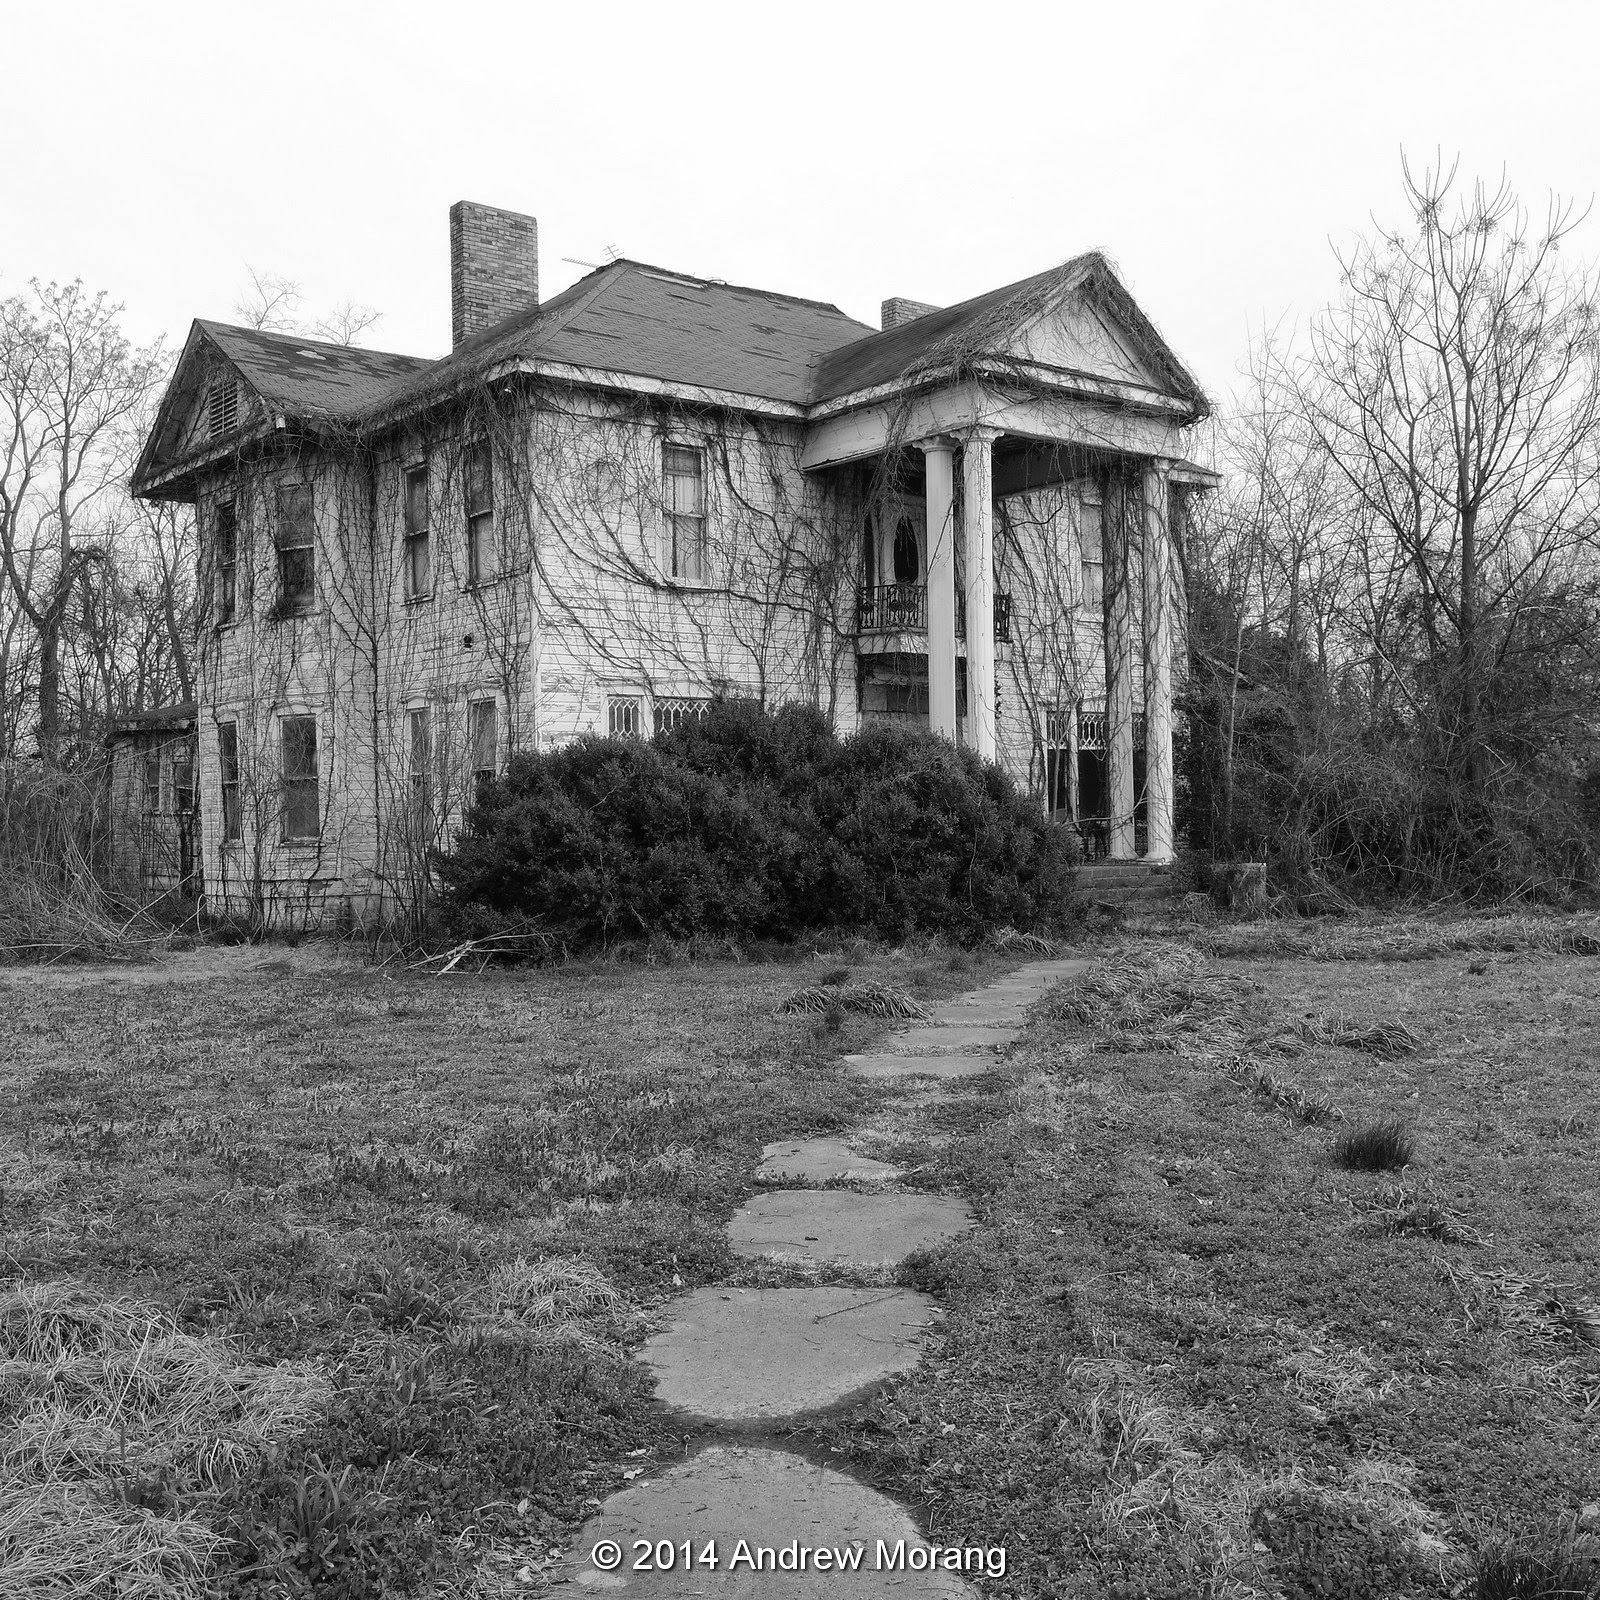 Urban Decay: Decaying Quickly: The Law House, Foote